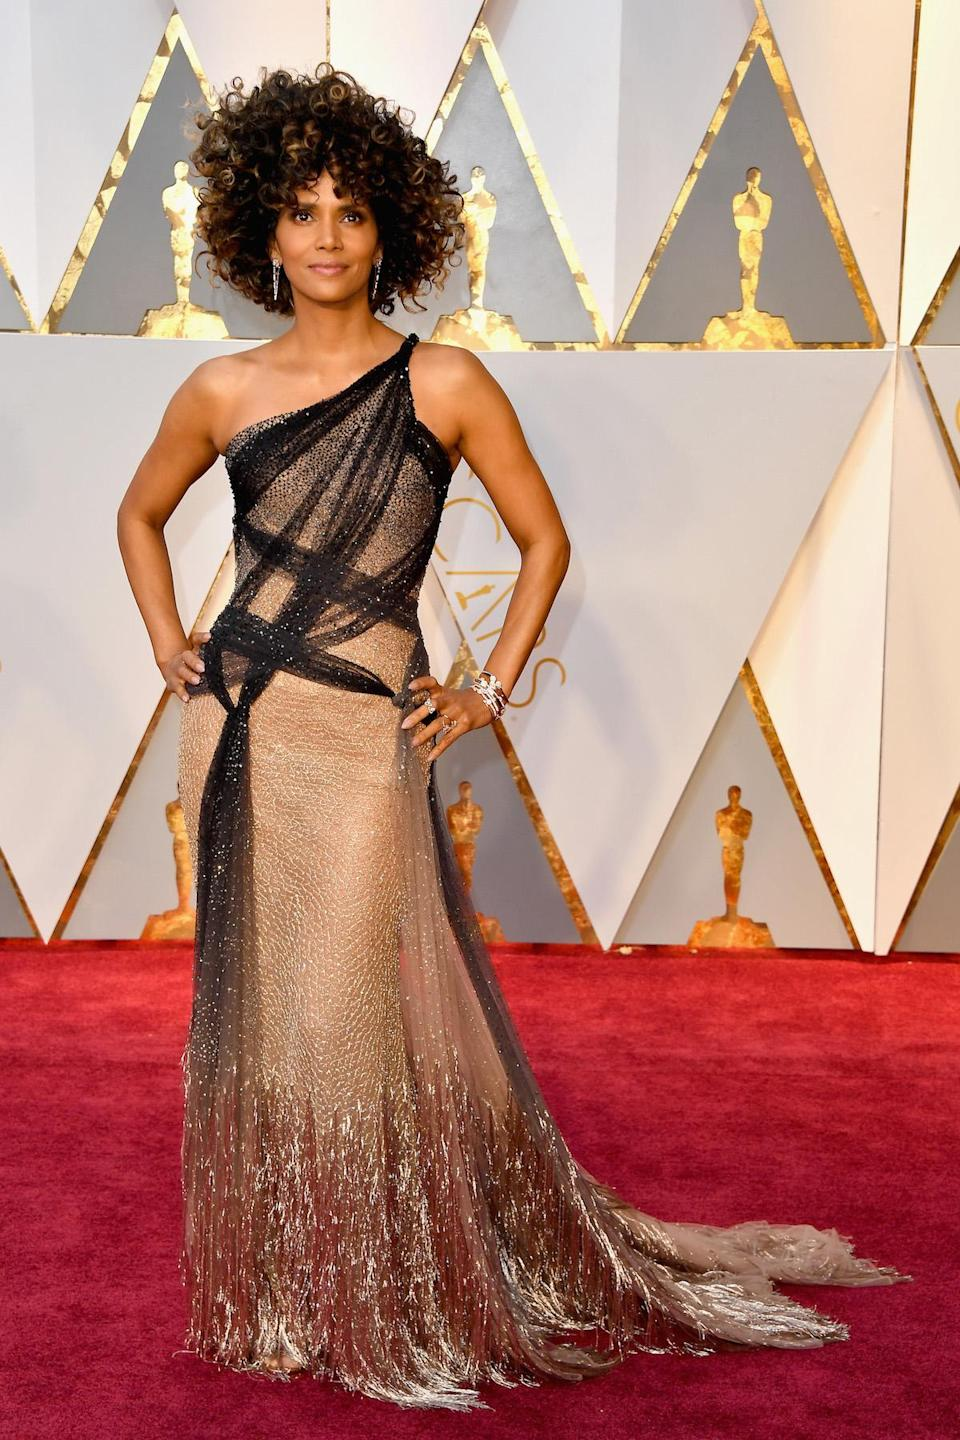 <p>Halle Berry's hairstyle set social media abuzz with so many fans calling her voluminous curls #goals, however her dress, designed by Versace, was pretty fantastic too. <em>(Photo: Getty Images)</em> </p>